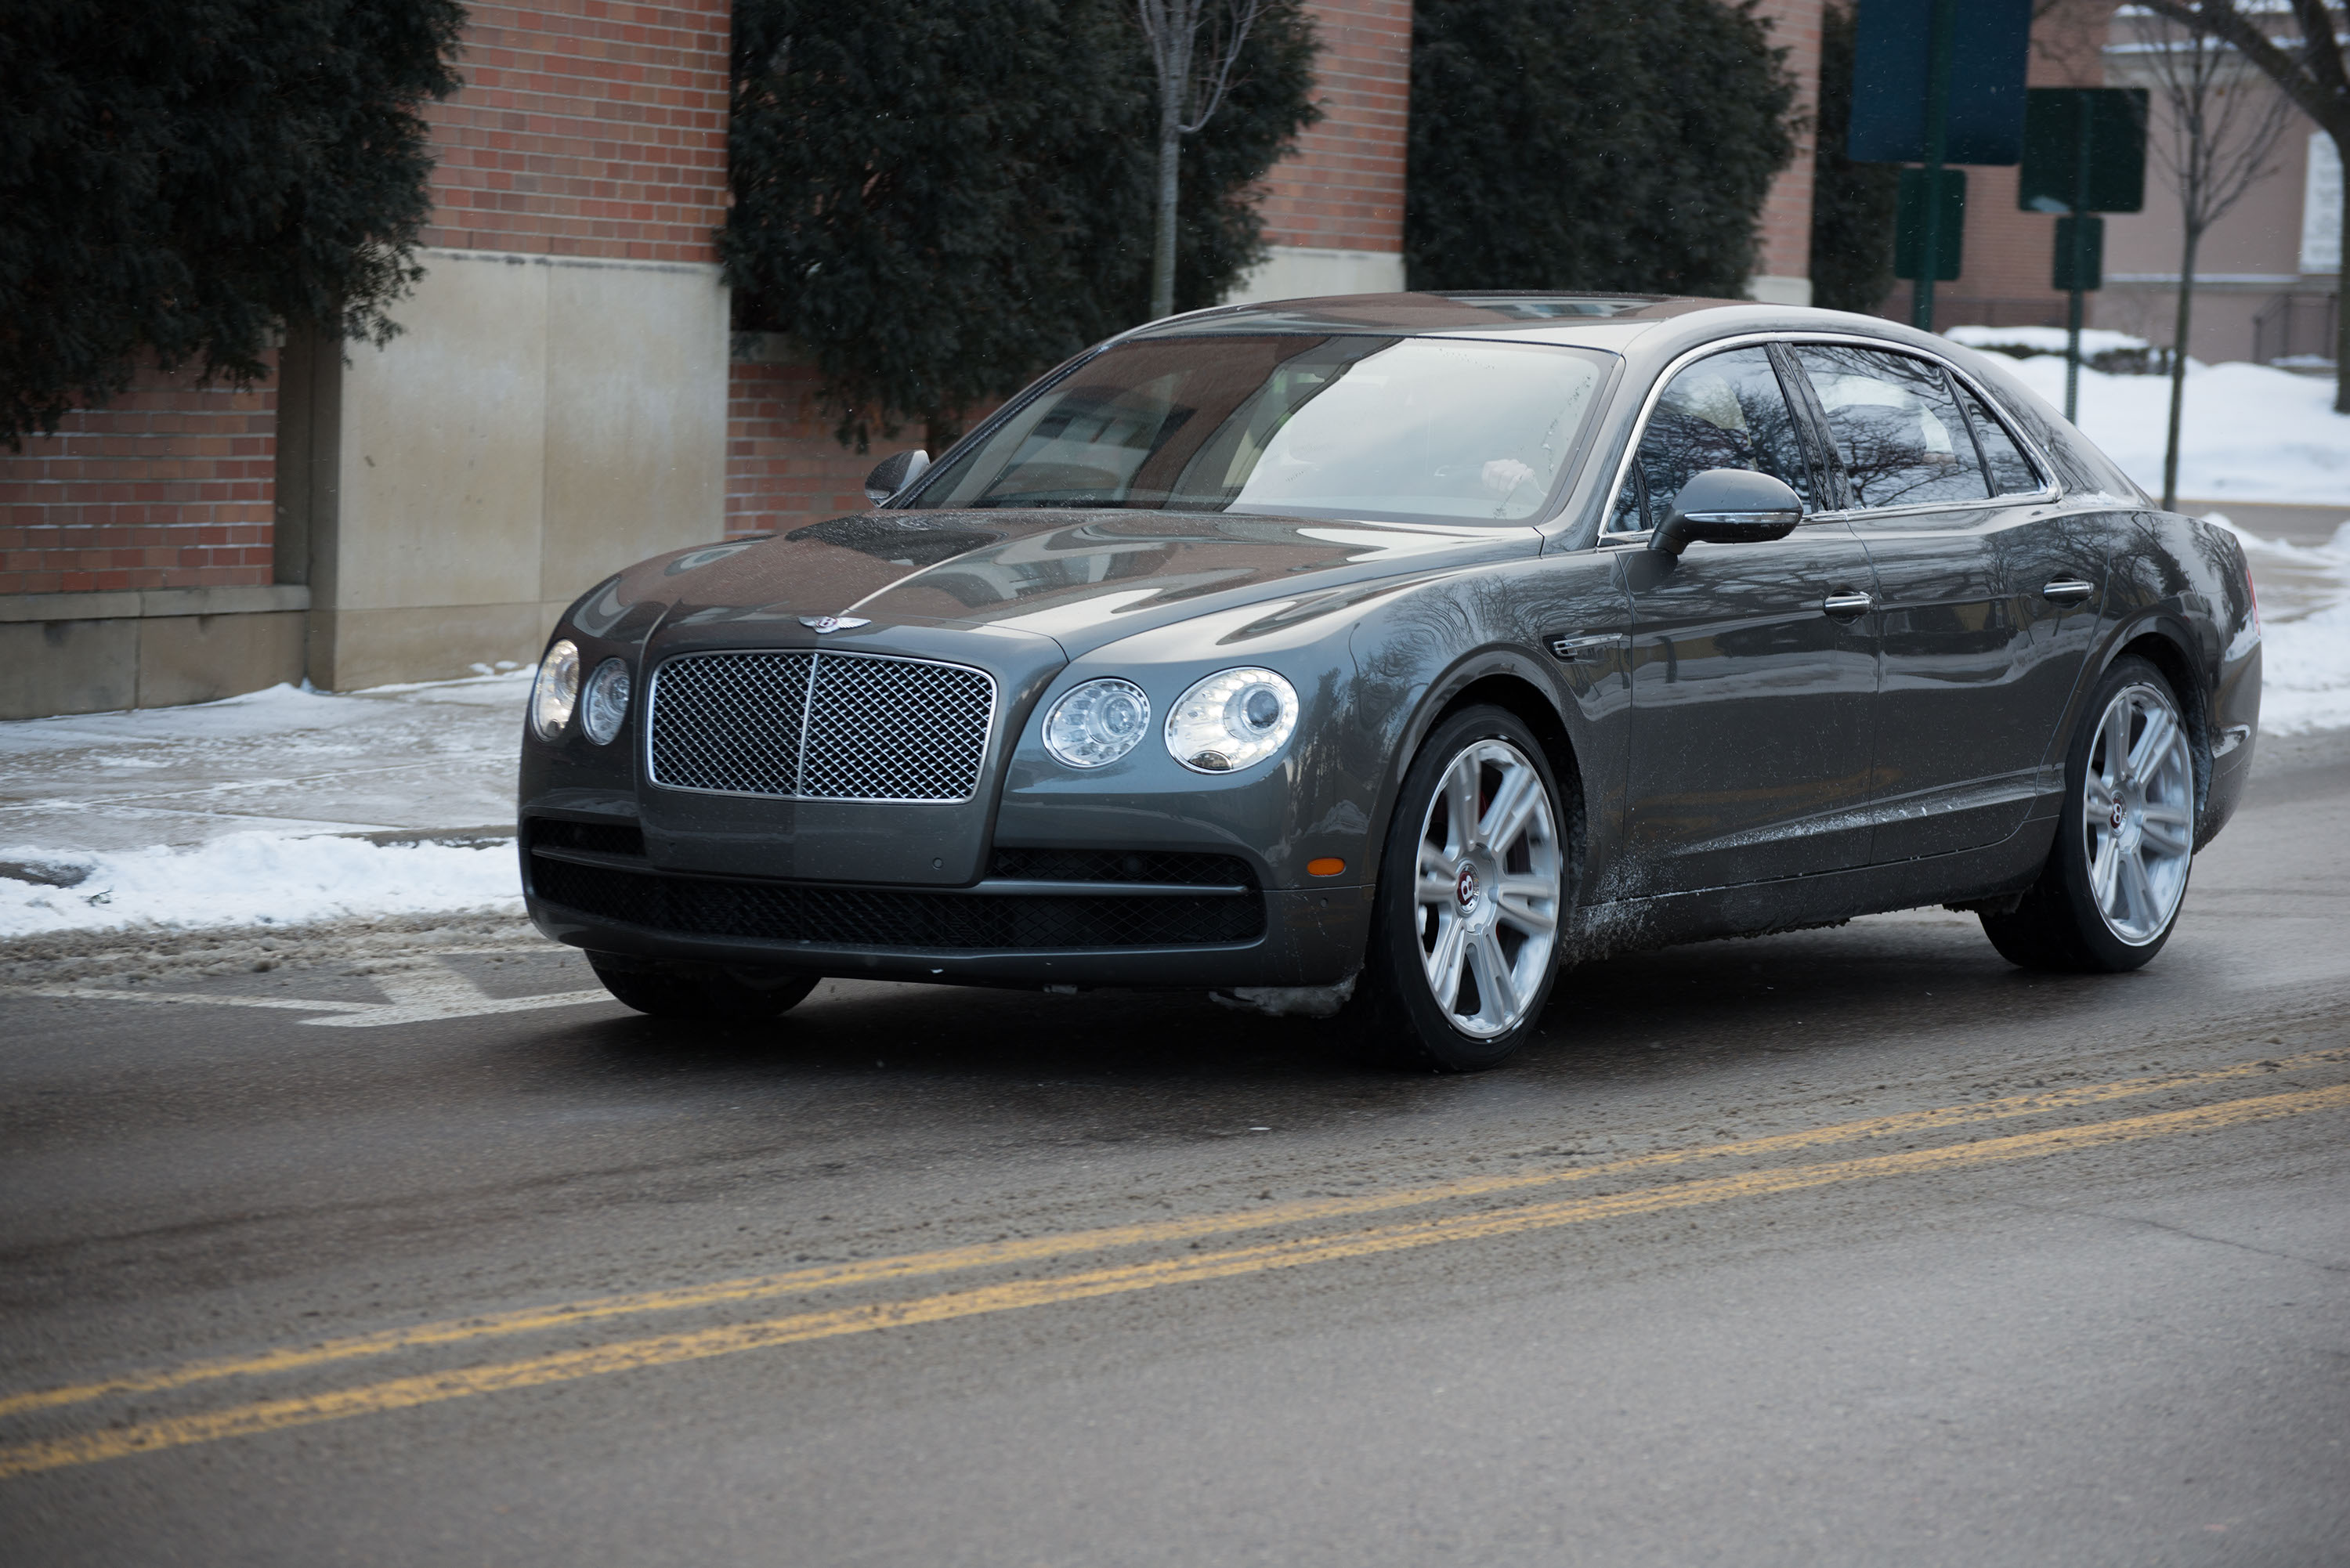 2015 Bentley Flying Spur V8 Review - AutoGuide.com